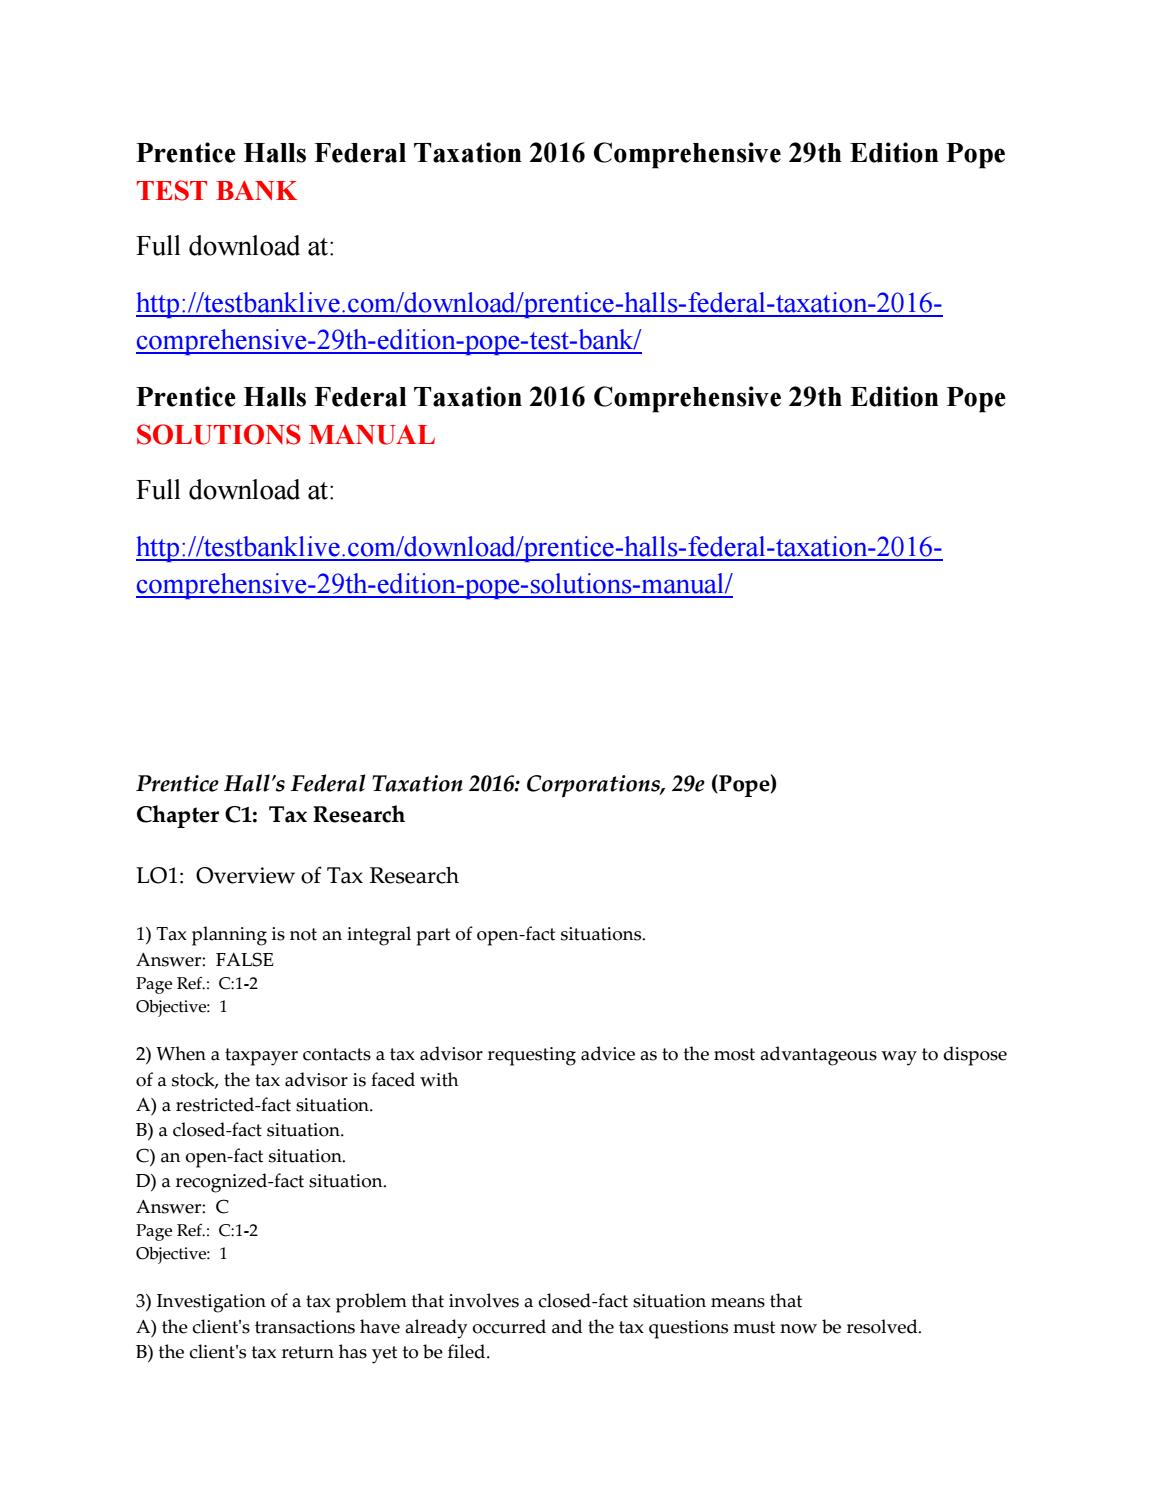 Prentice halls federal taxation 2016 comprehensive 29th edition pope test  bank by Caridwen123 - issuu